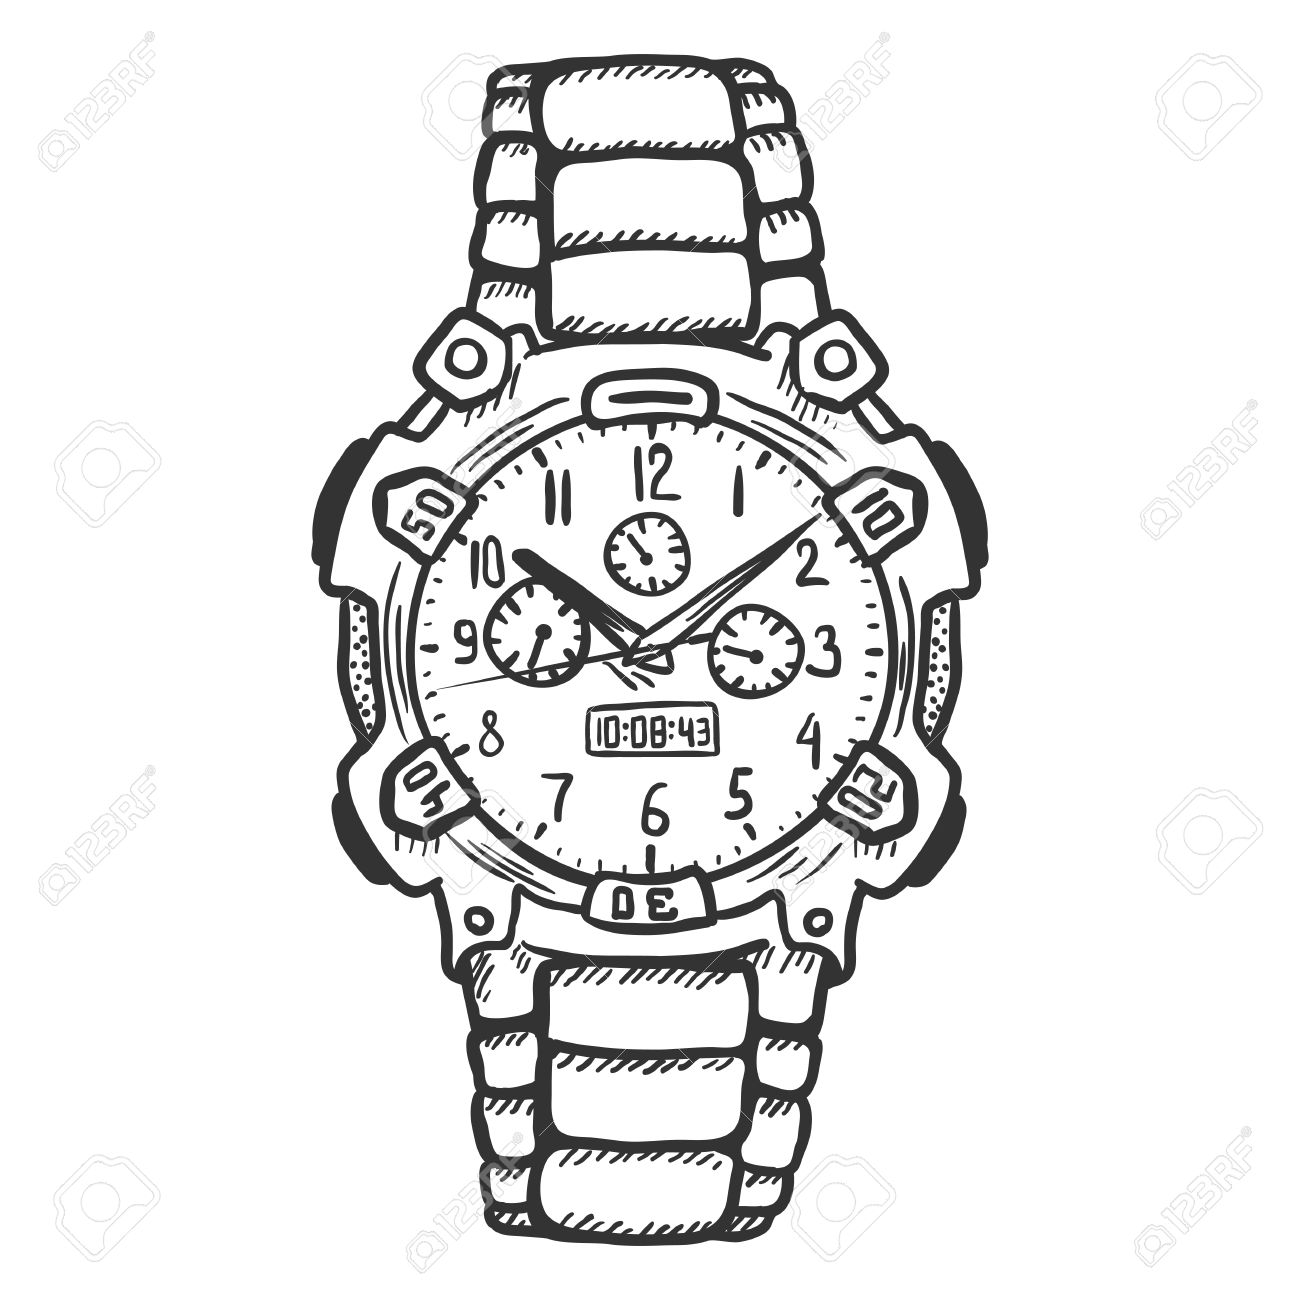 Wrist Watch Clipart Black And White